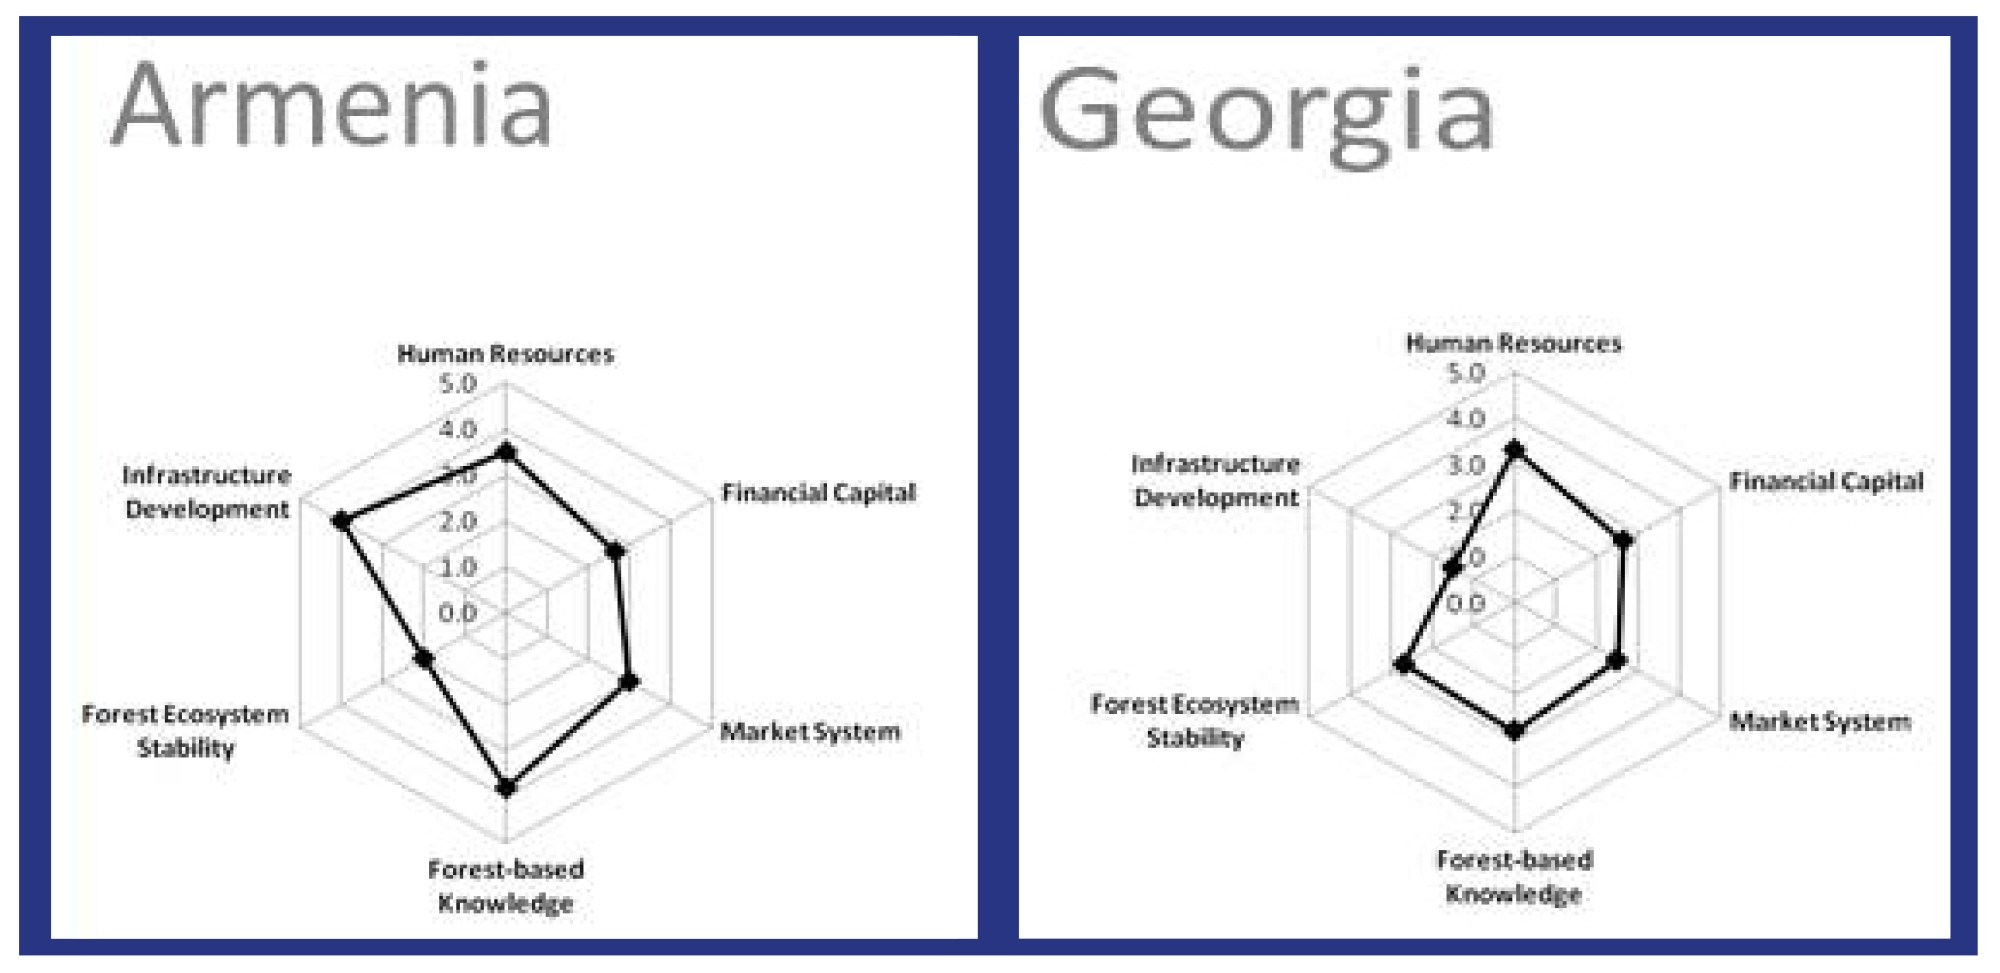 hight resolution of in the sample diagrams from communities in armenia and georgia the shapes highlight the differences in infrastructure forest based knowledge and forest